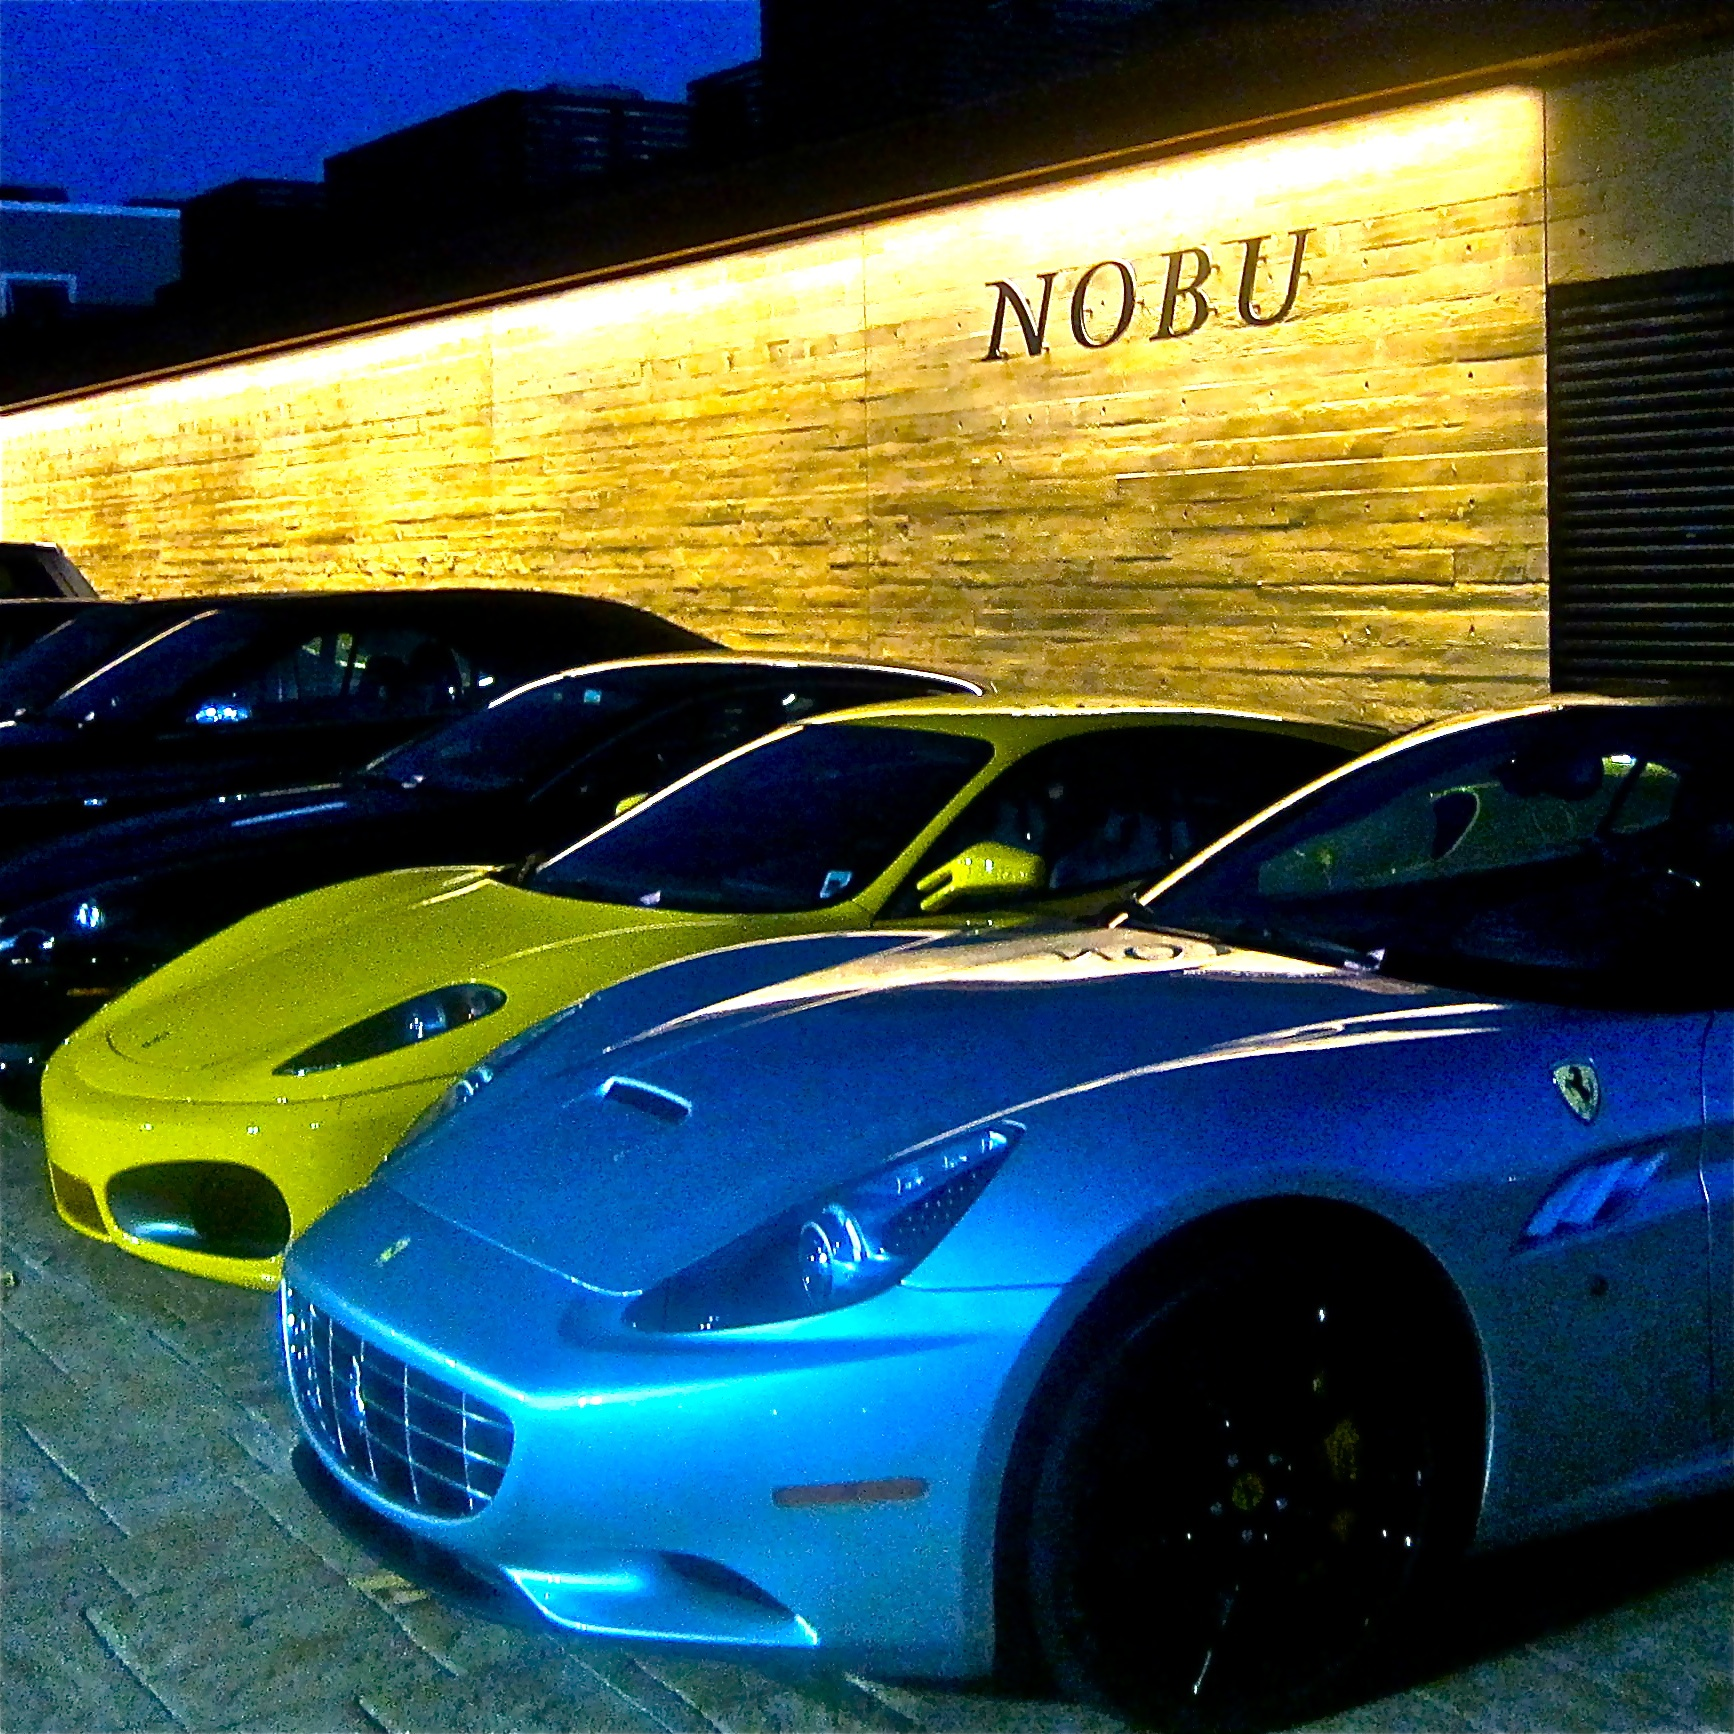 Nobu entrance -note two luxuripis Ferraris